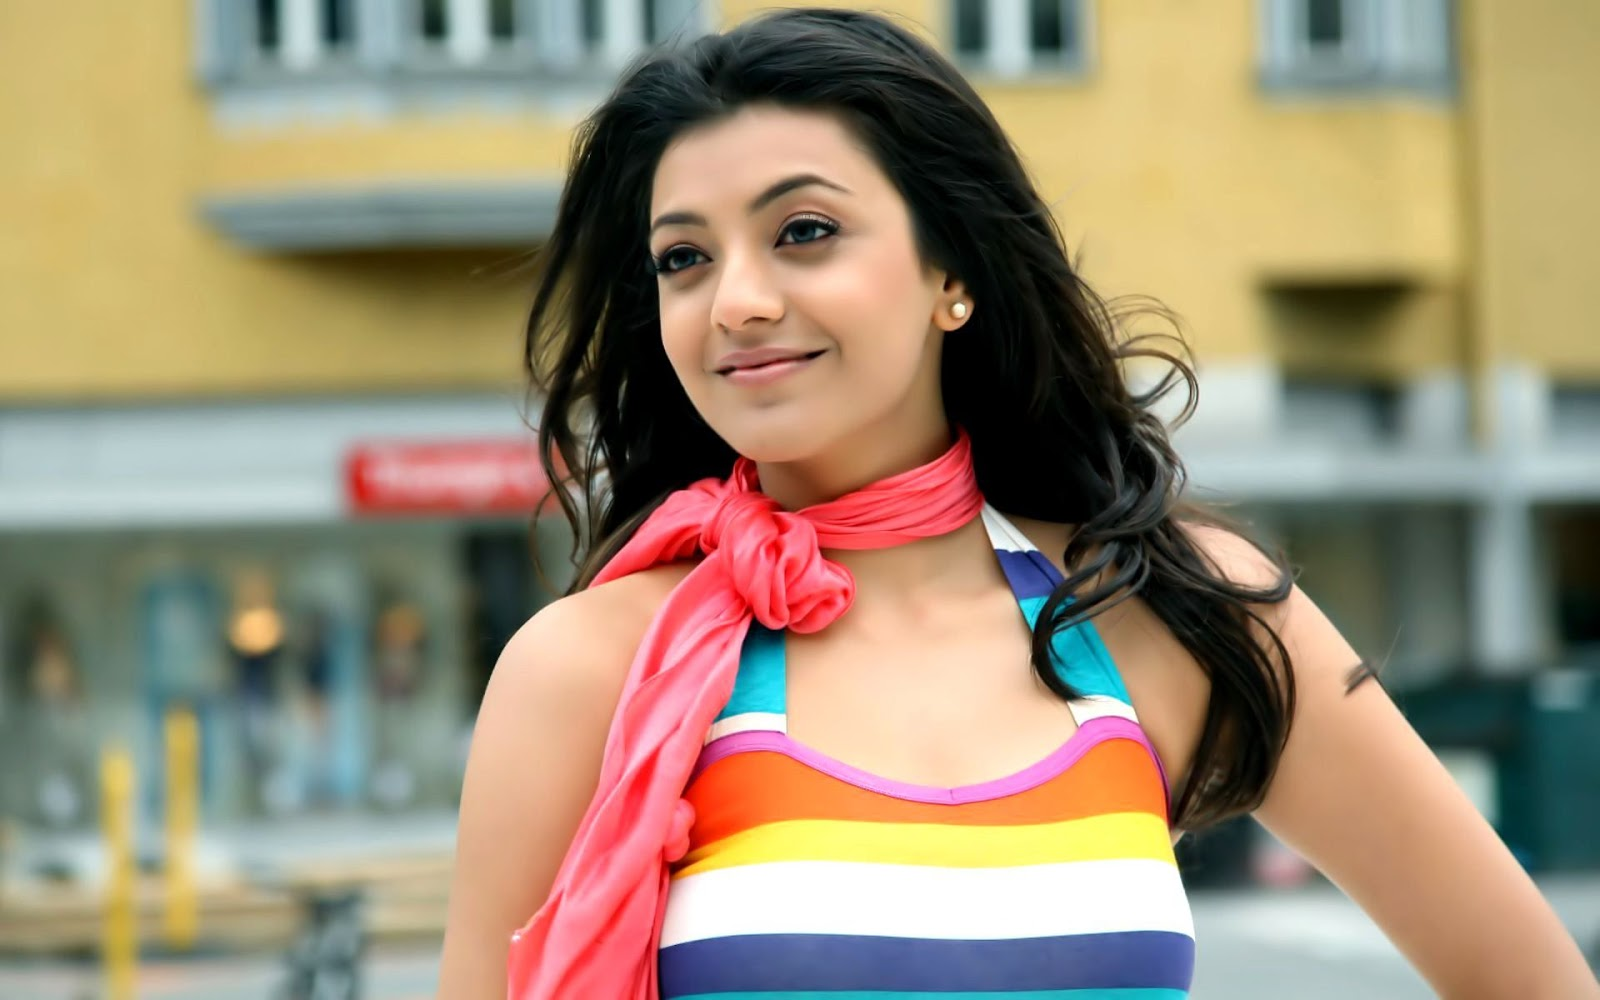 kajal agarwal hot wallpapers collections 2017 - santa banta